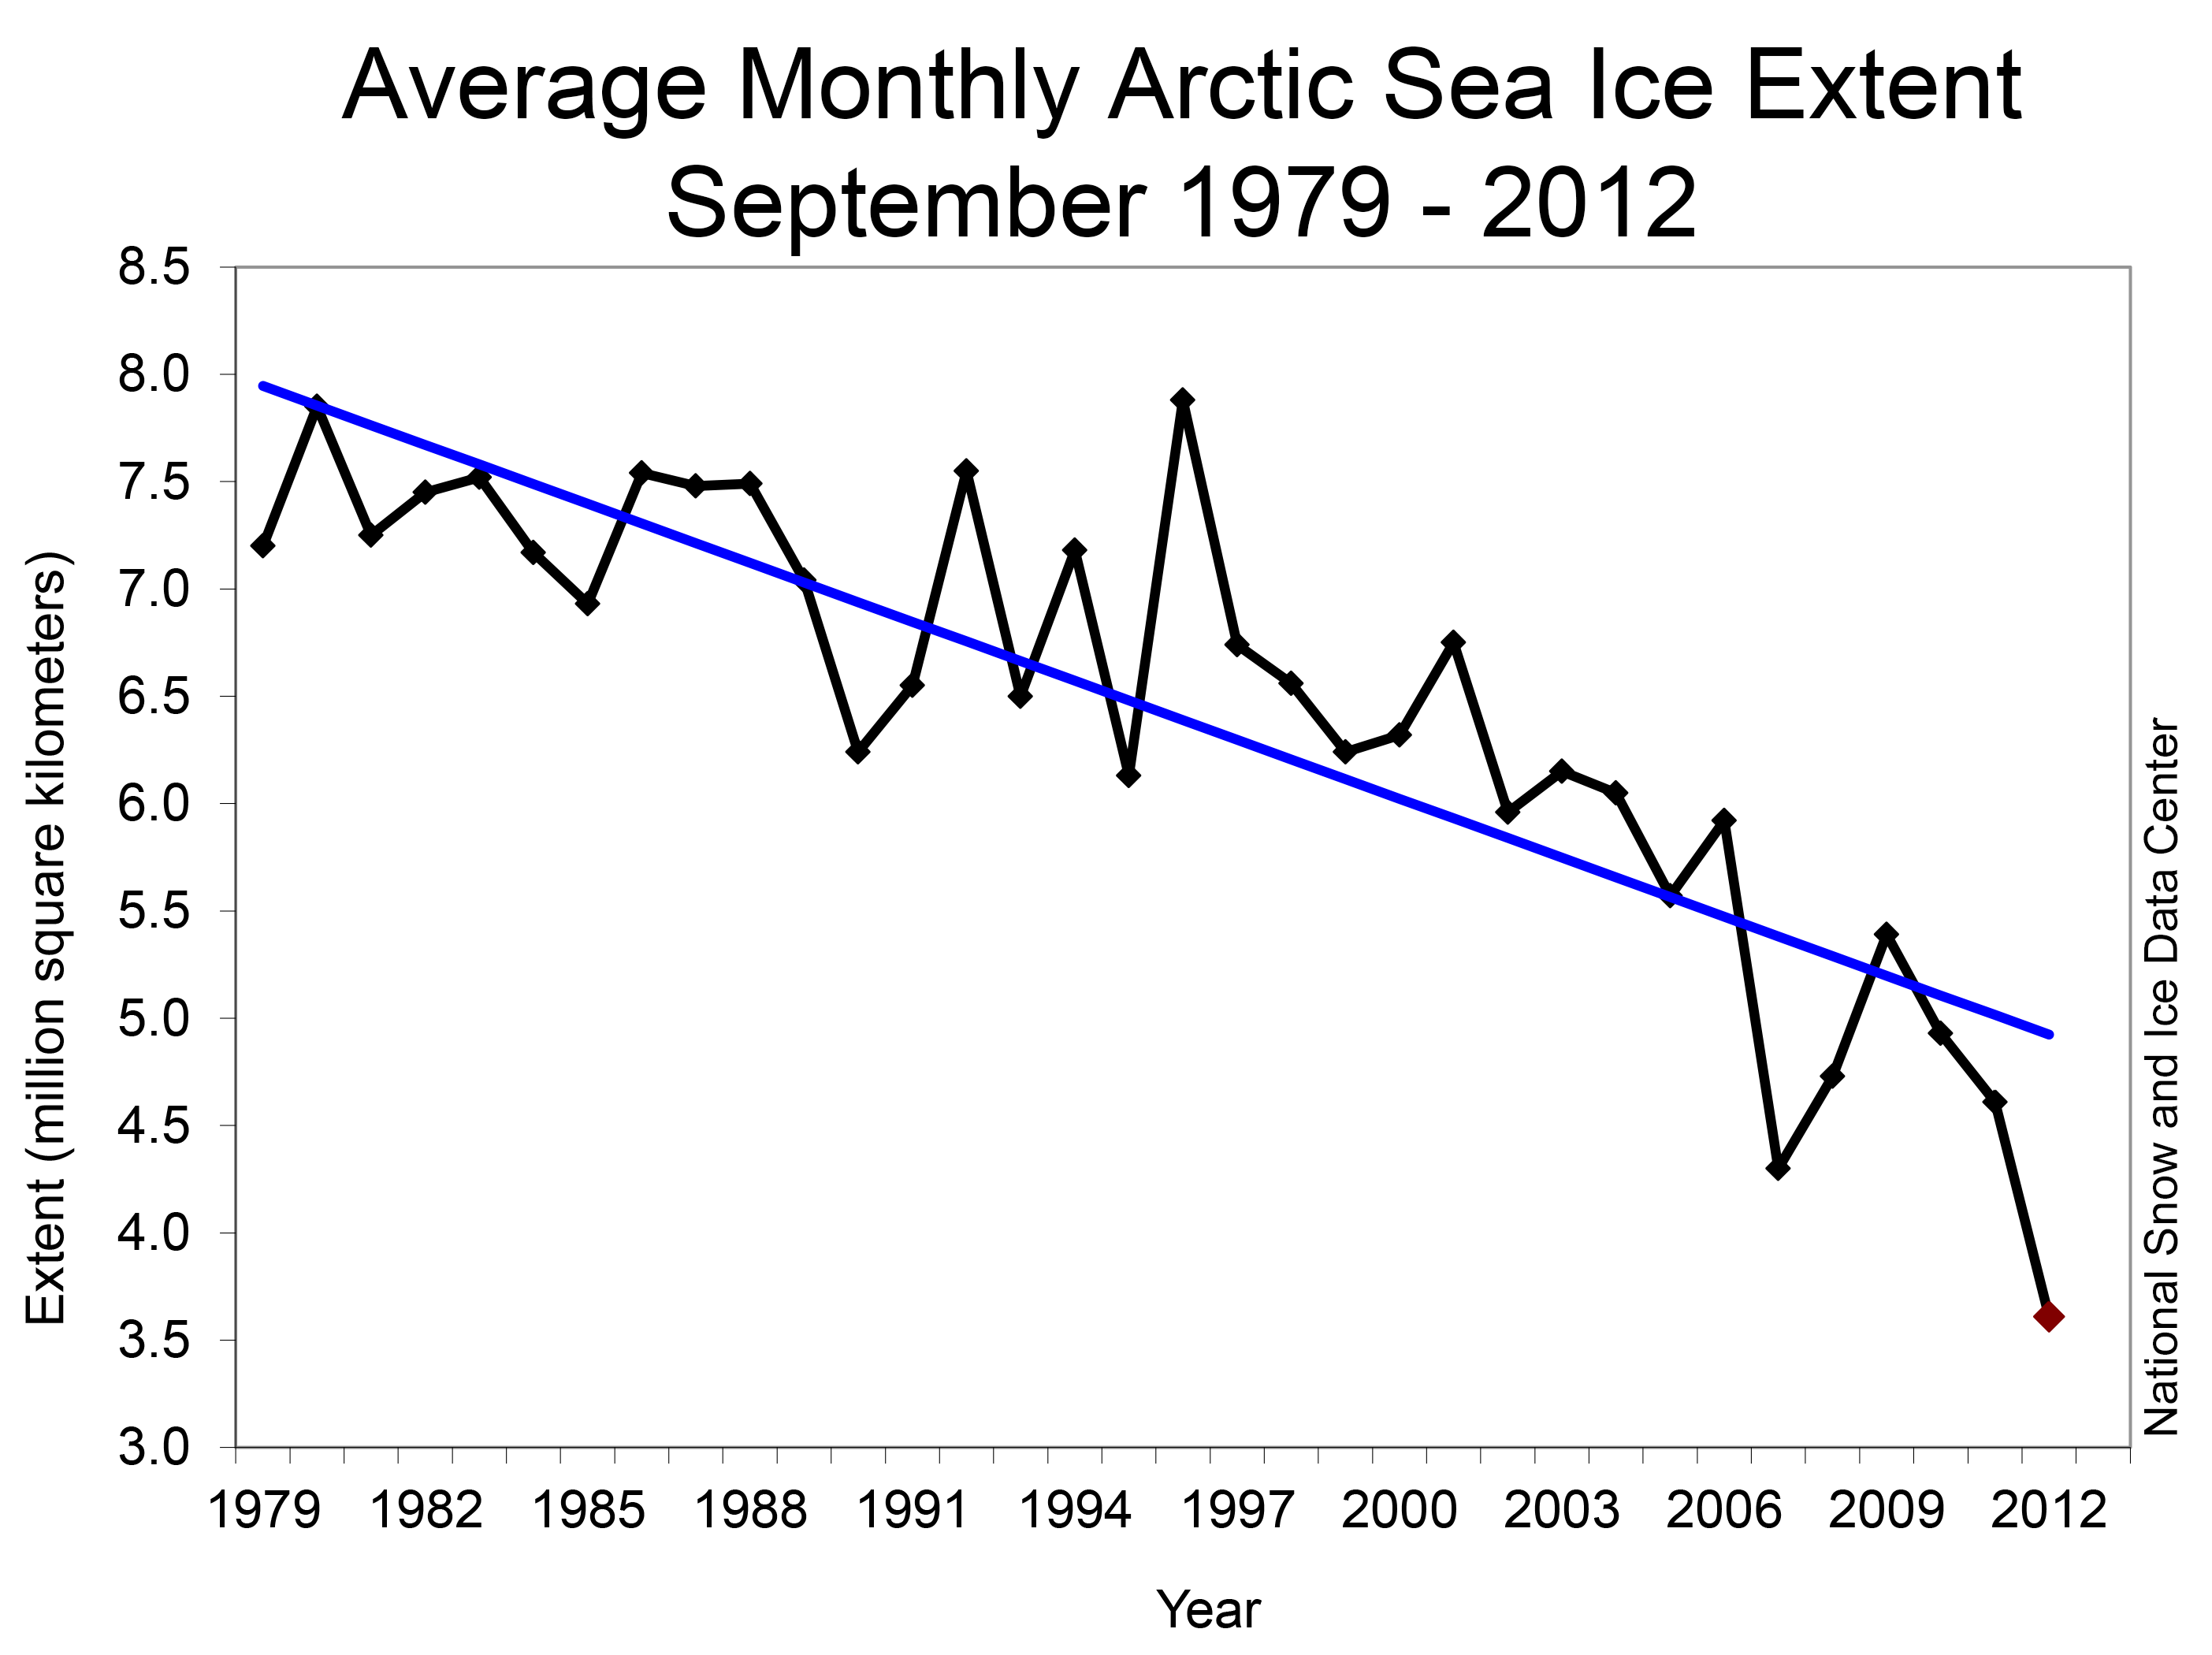 Average Monthly Arctic Sea Ice Extent Sep 1979-2012